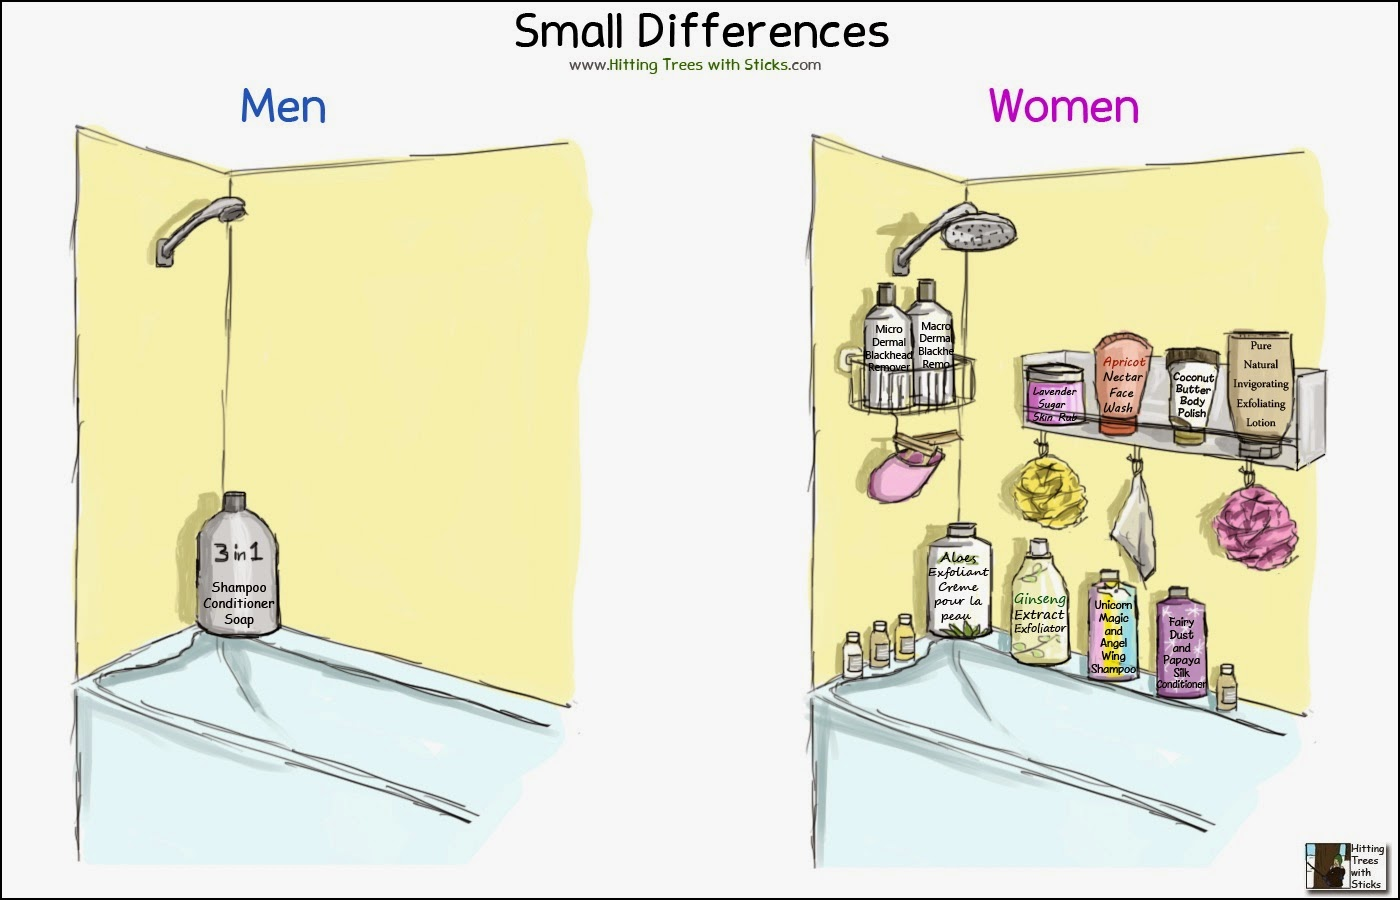 the differences in men and women Men vs women the differences between men and women have spawned literature, social structures, jokes, psychology streams, medicinal approaches and more.